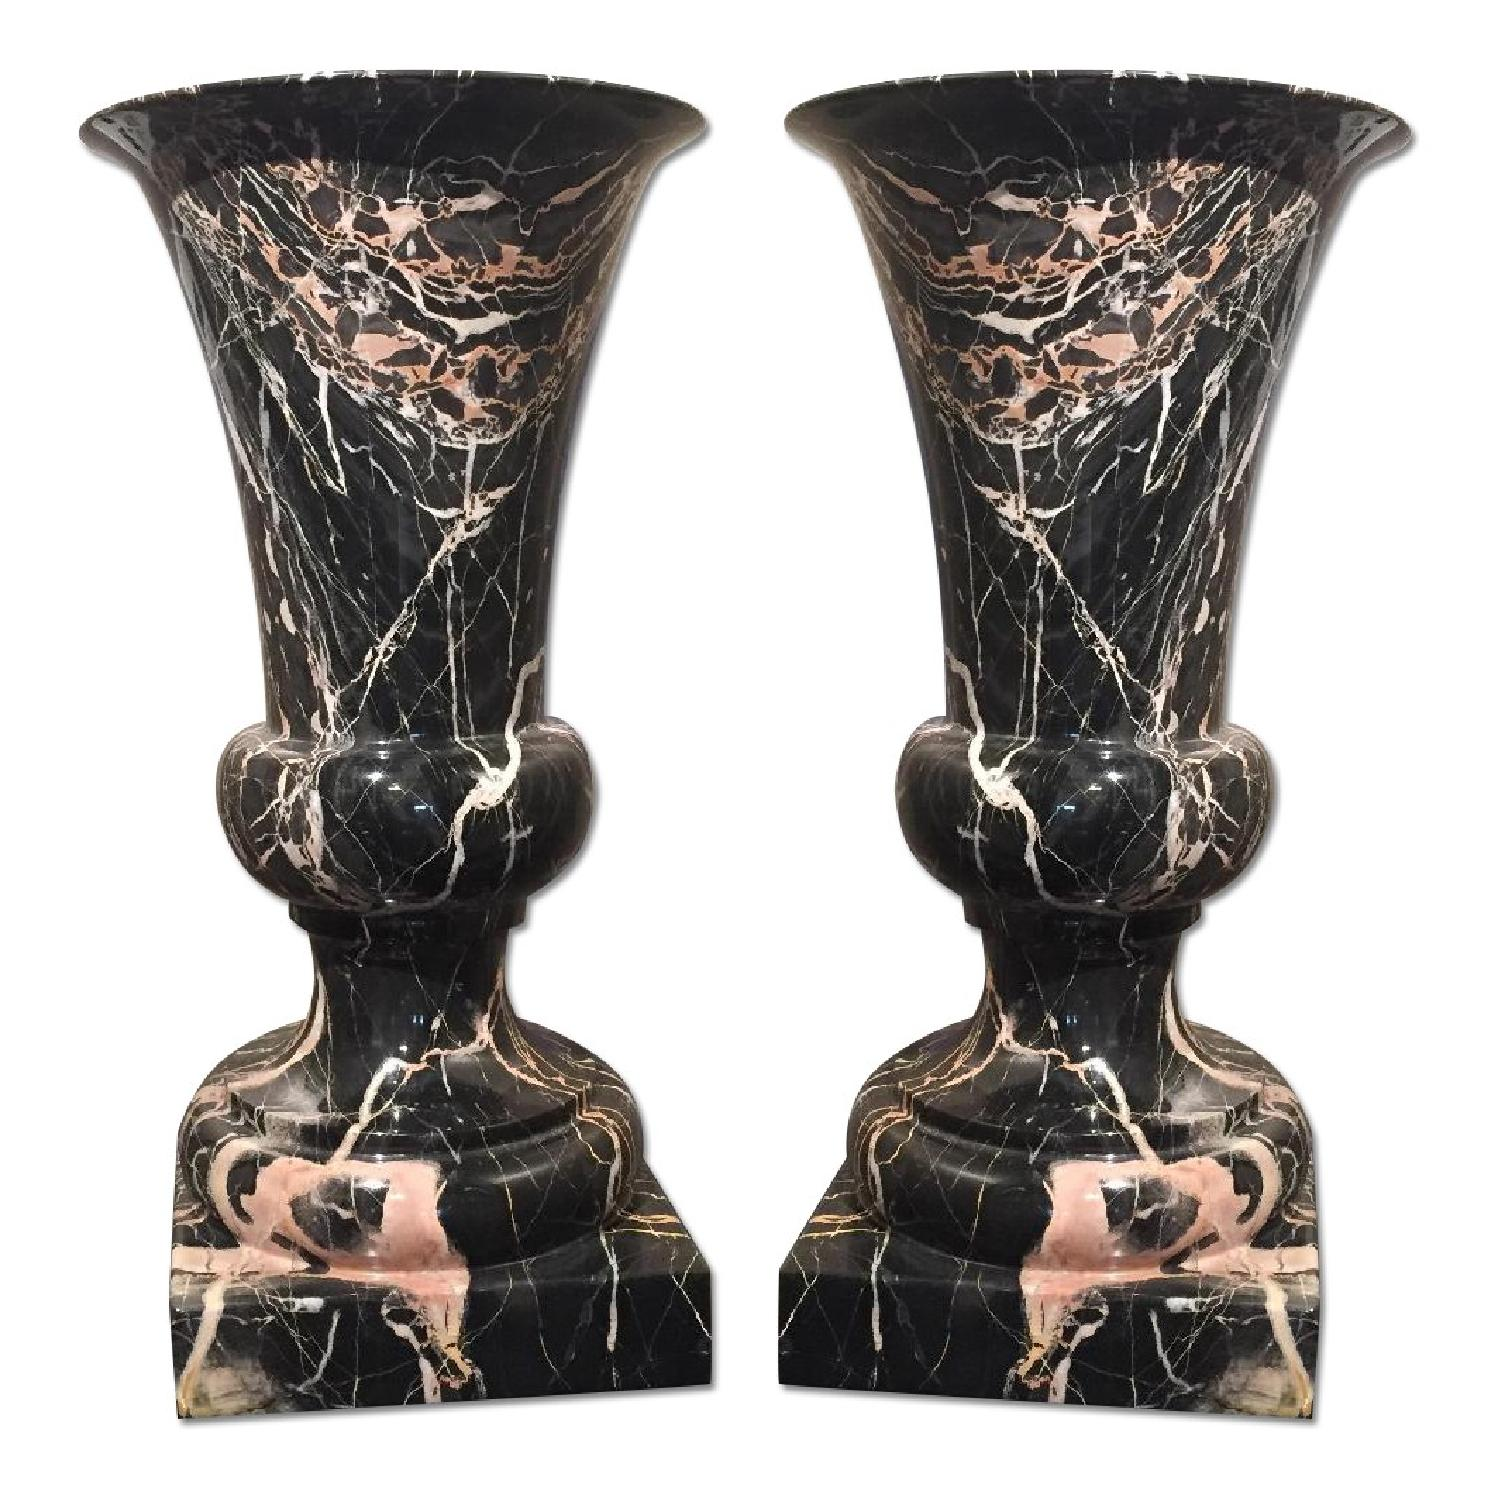 Marble Urns - Pair